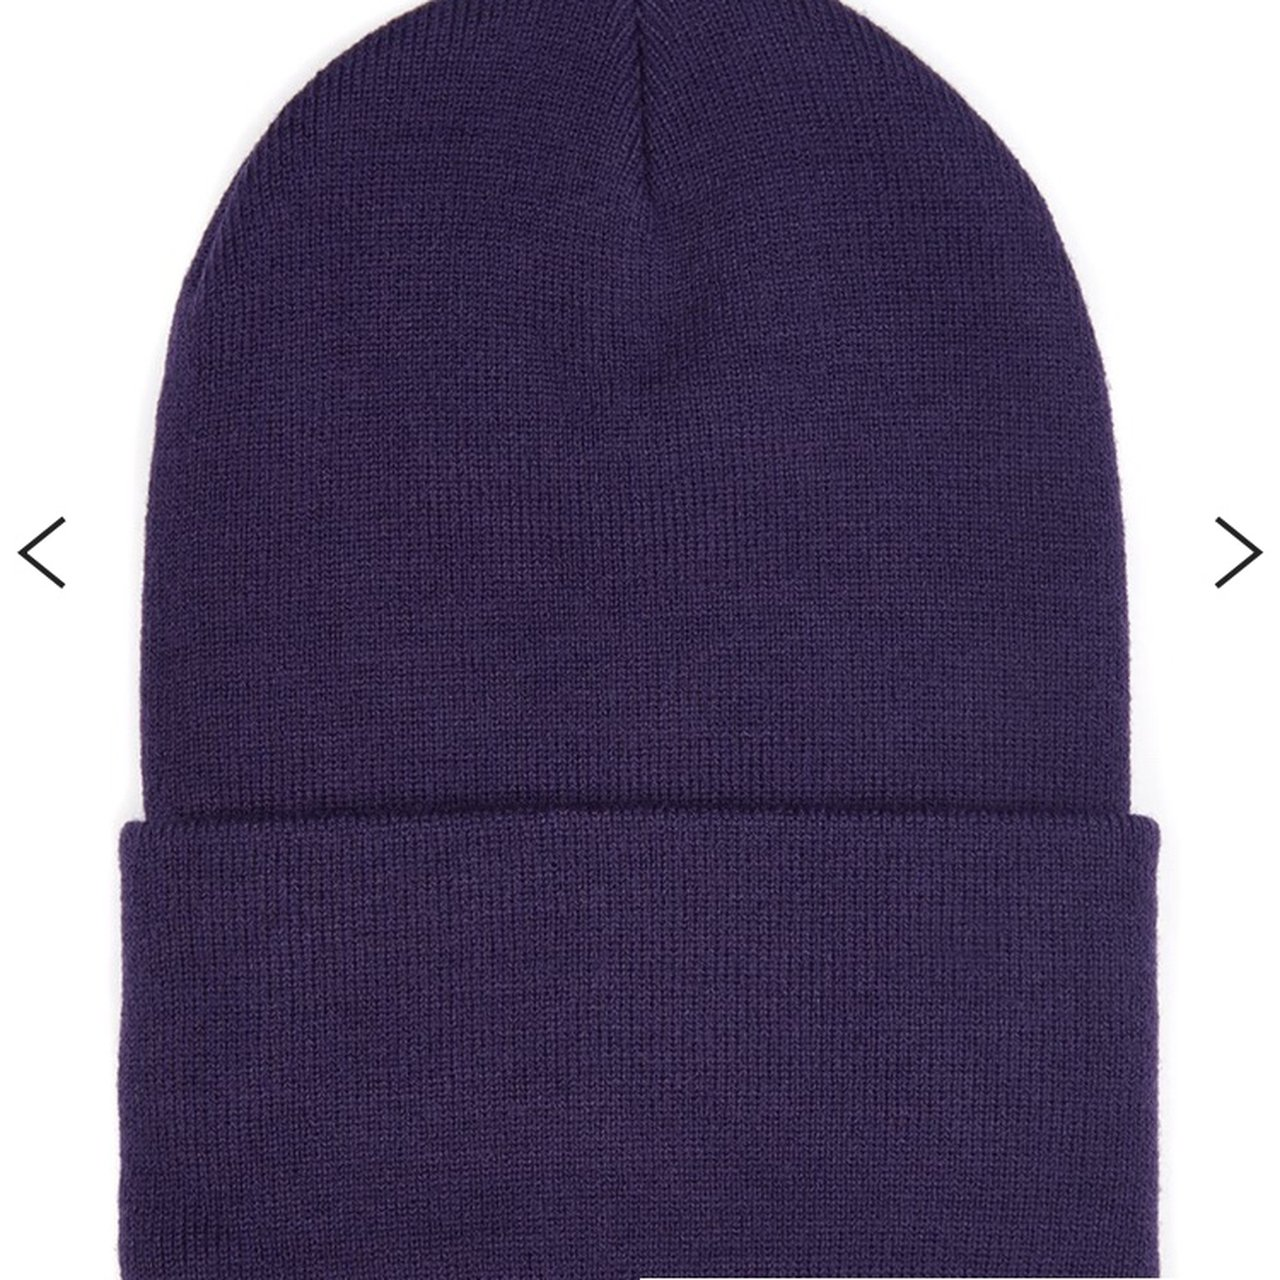 Topman plum   purple skater beanie. Pretty tight which is it - Depop 00b650b56311